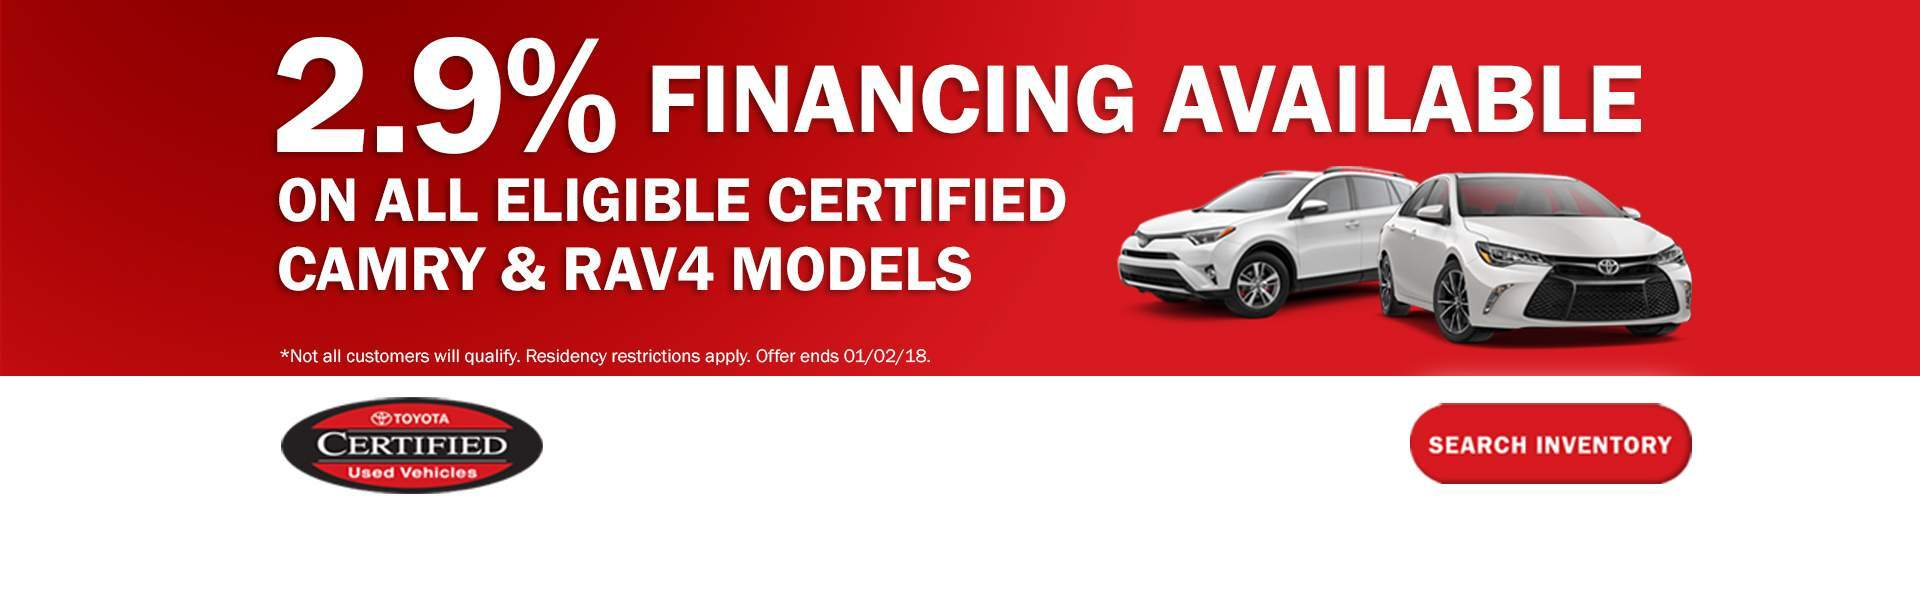 2.9% Financing Available